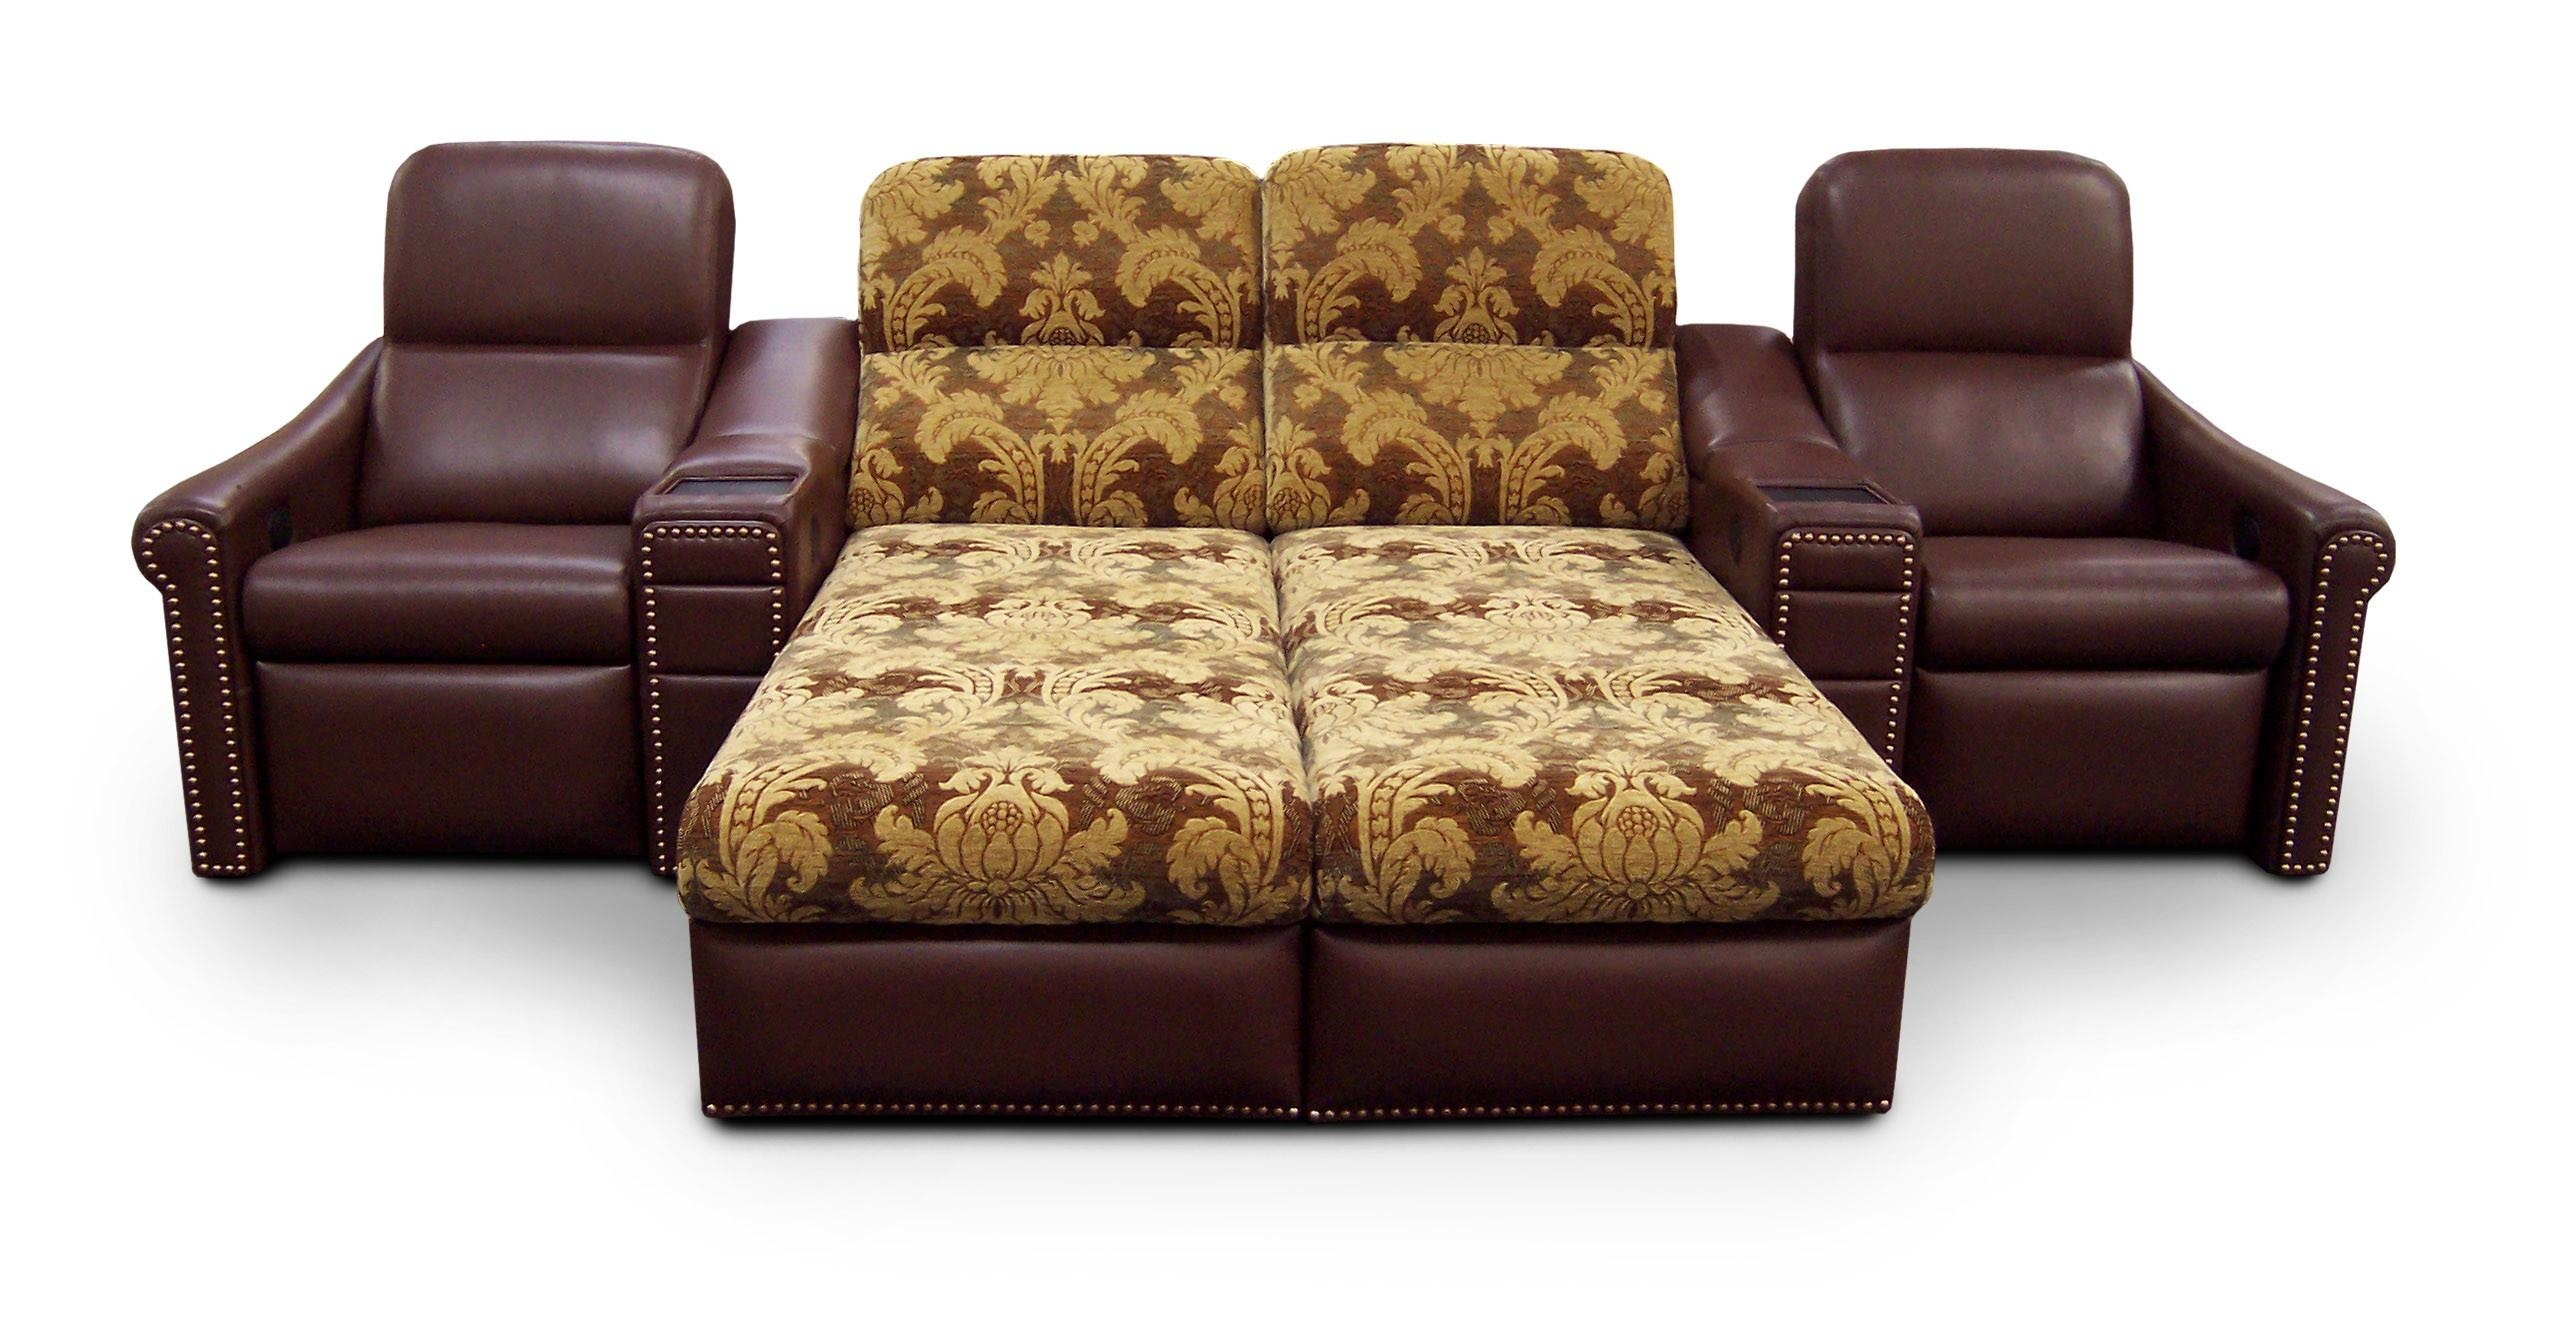 Chaise Chair 20 Collection Of Chaise Sofa Chairs Sofa Ideas